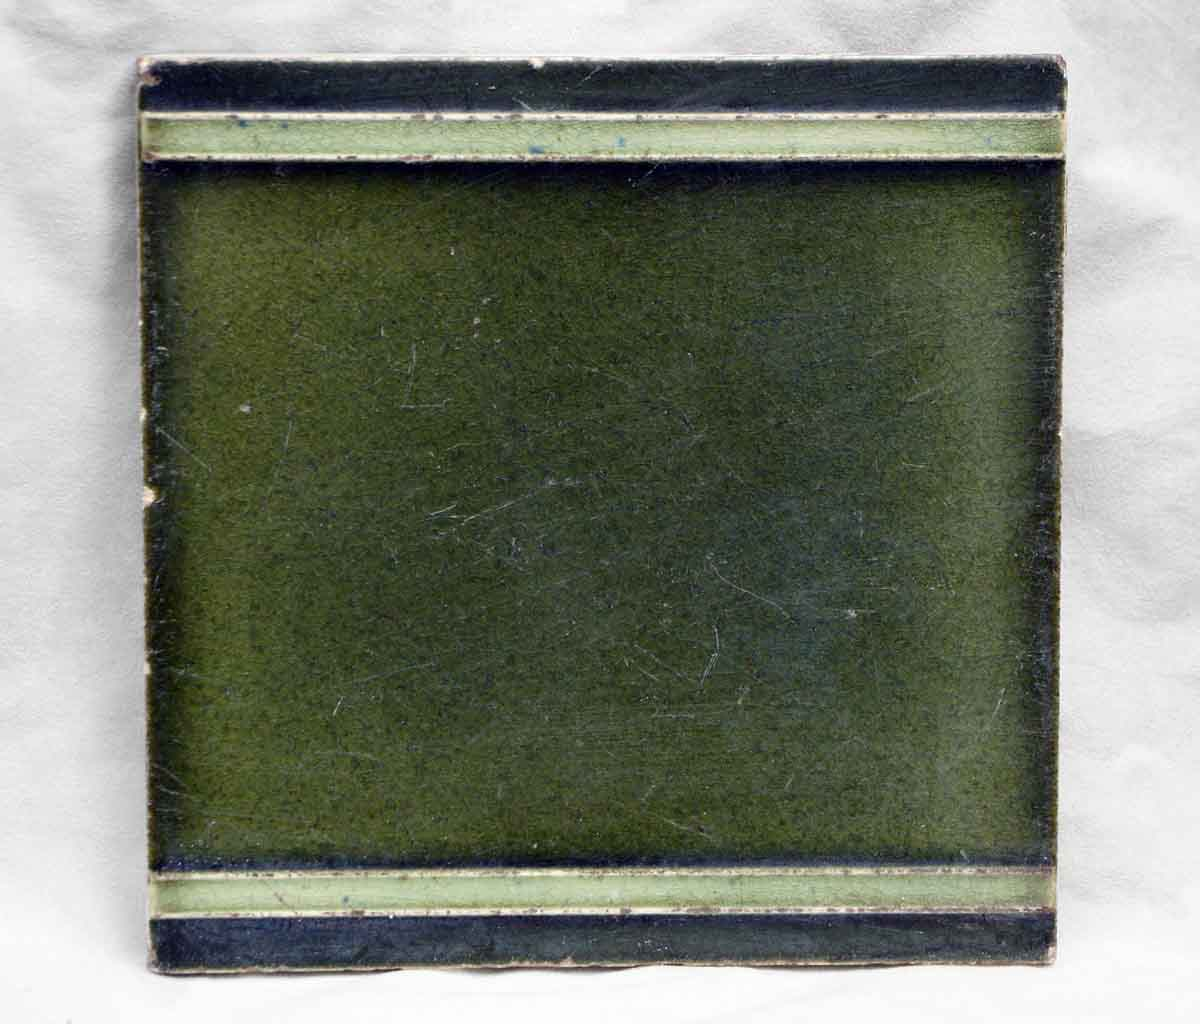 Dark Green Tile with Two Light Green Lines